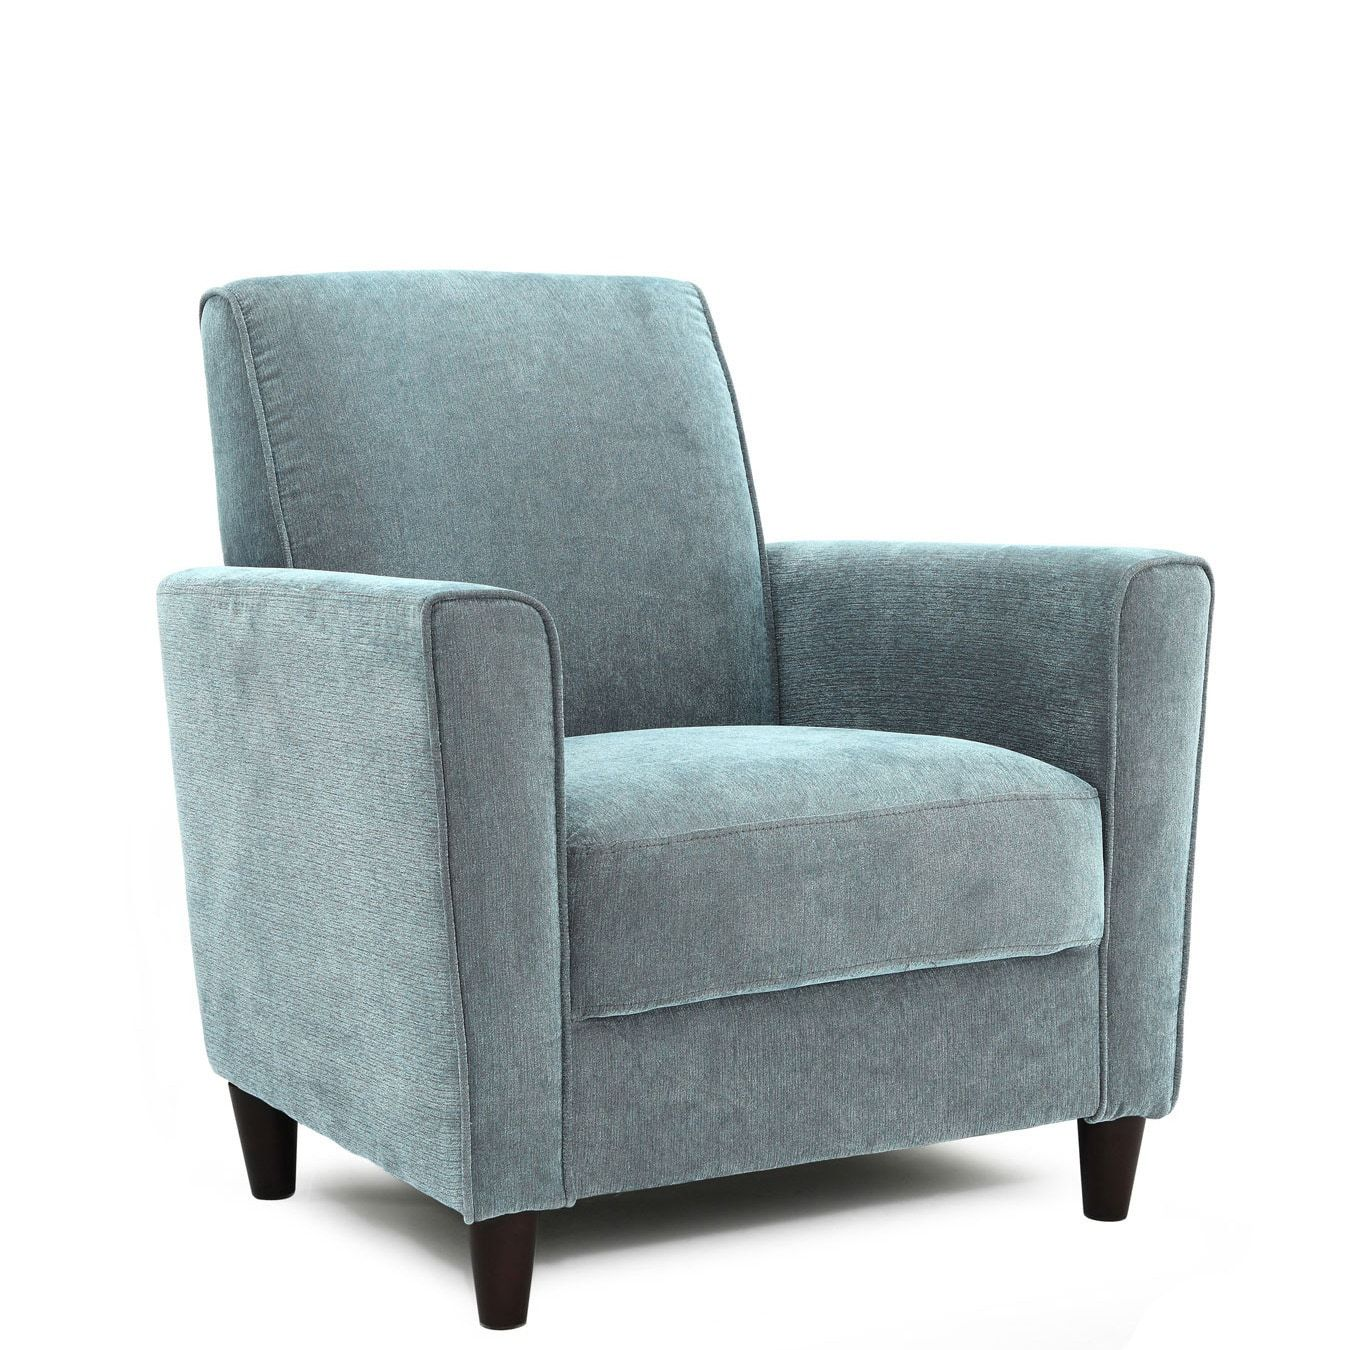 Enzo Solid Colored Accent Chair Ping The Best Deals On Living Room Chairs